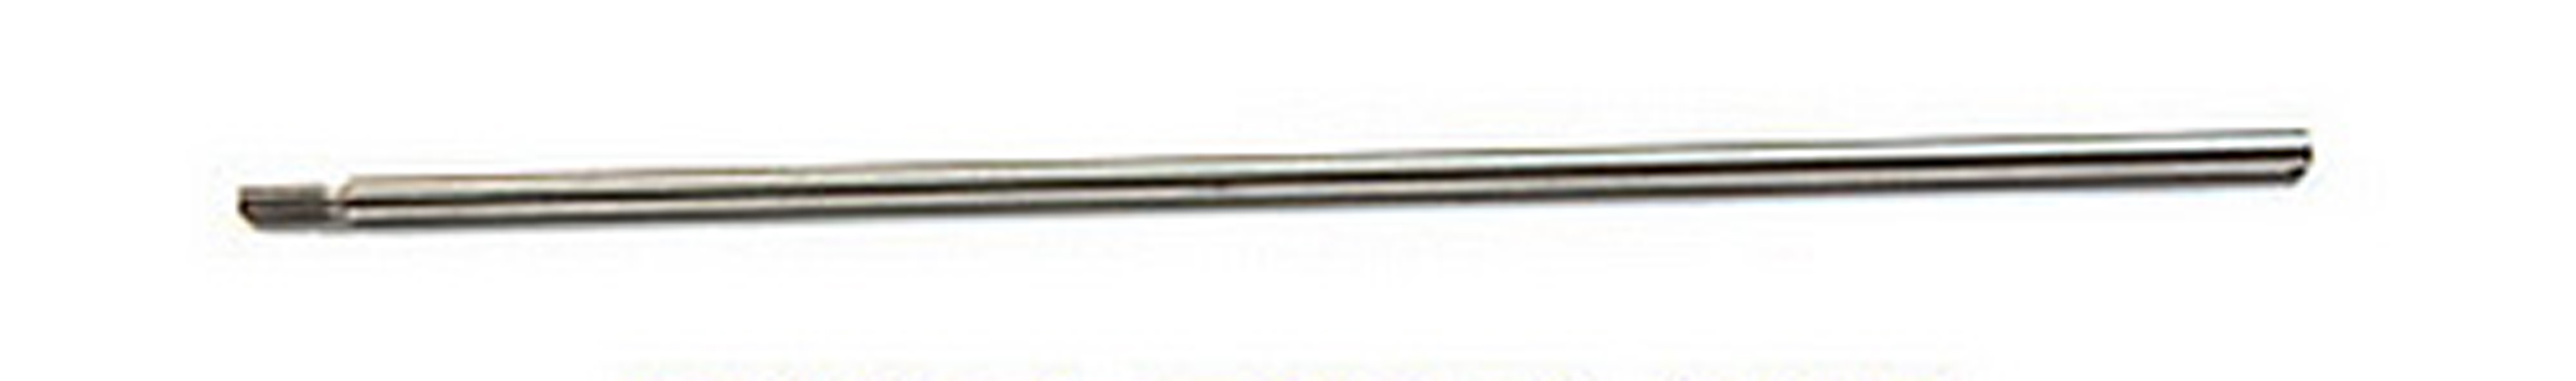 Key Rod - 115 mm long